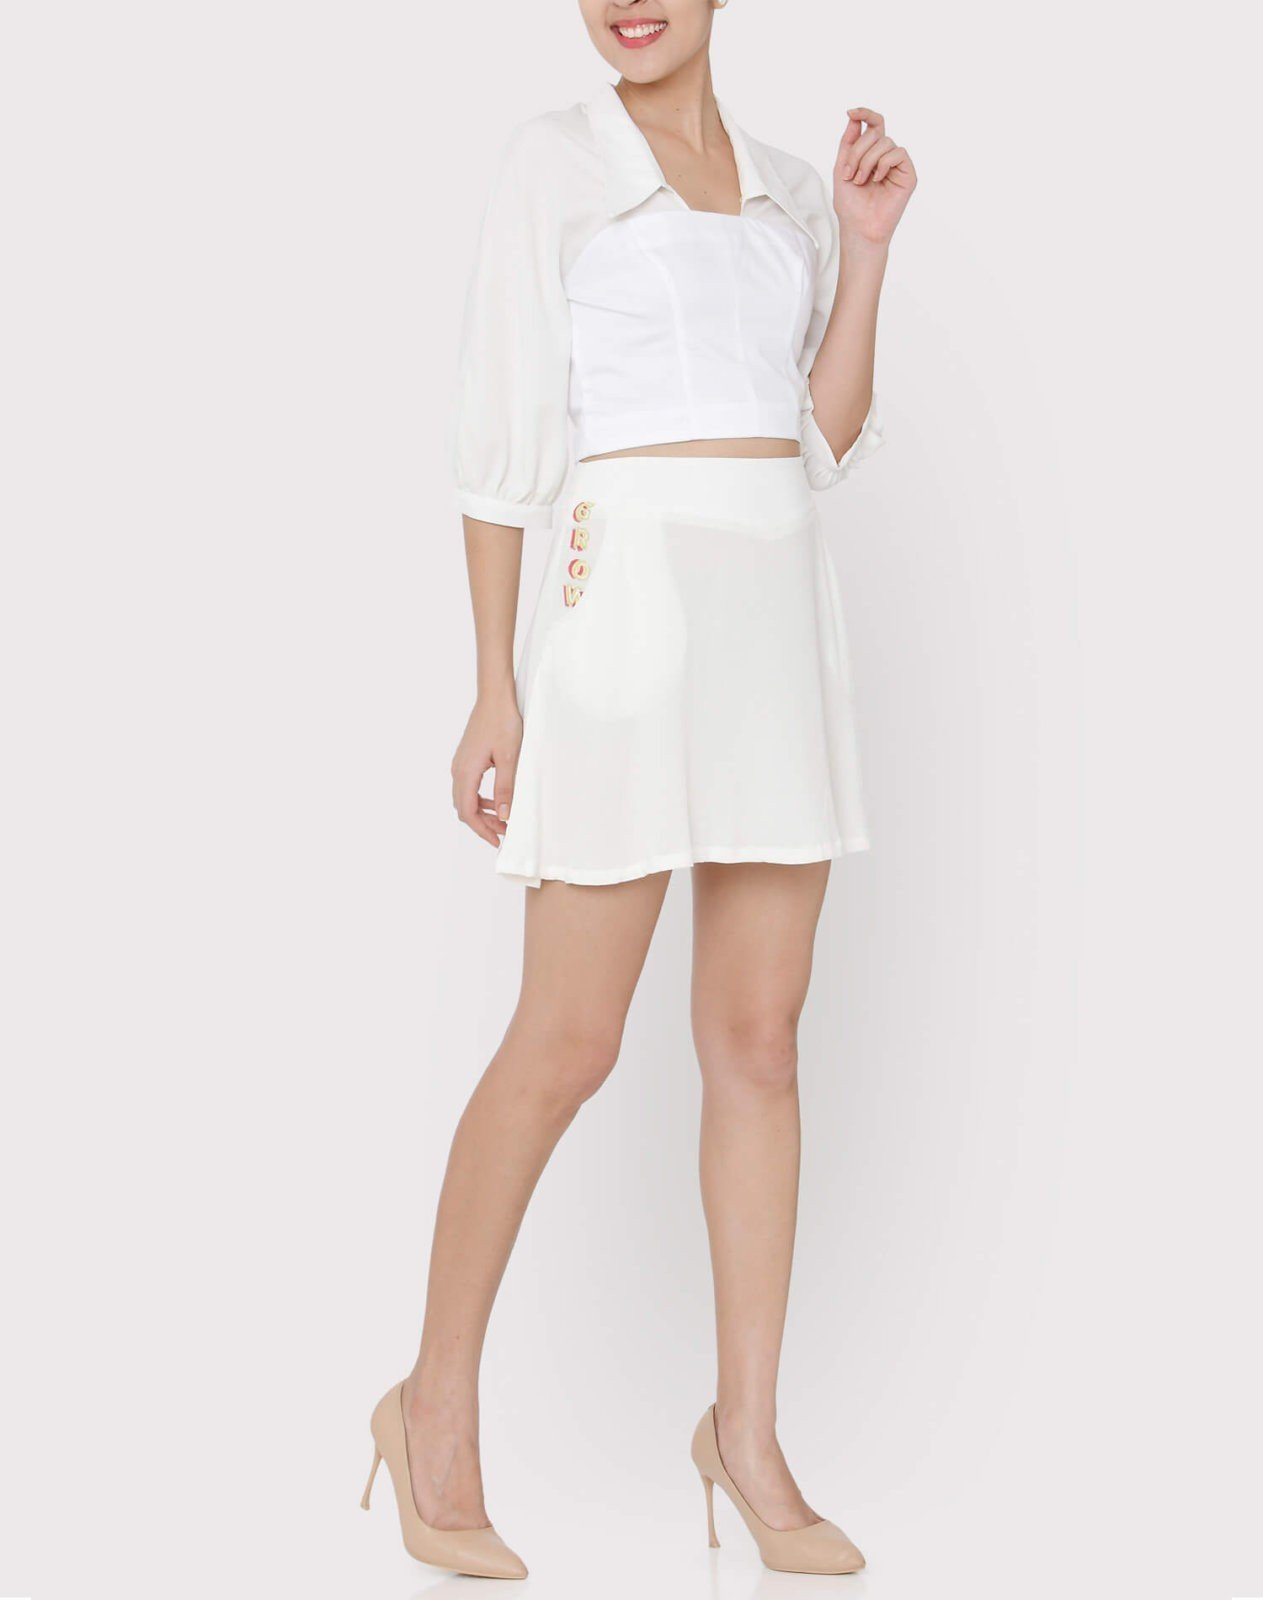 White cotton satin and georgette lace up shirt styled with white georgette skater skirt